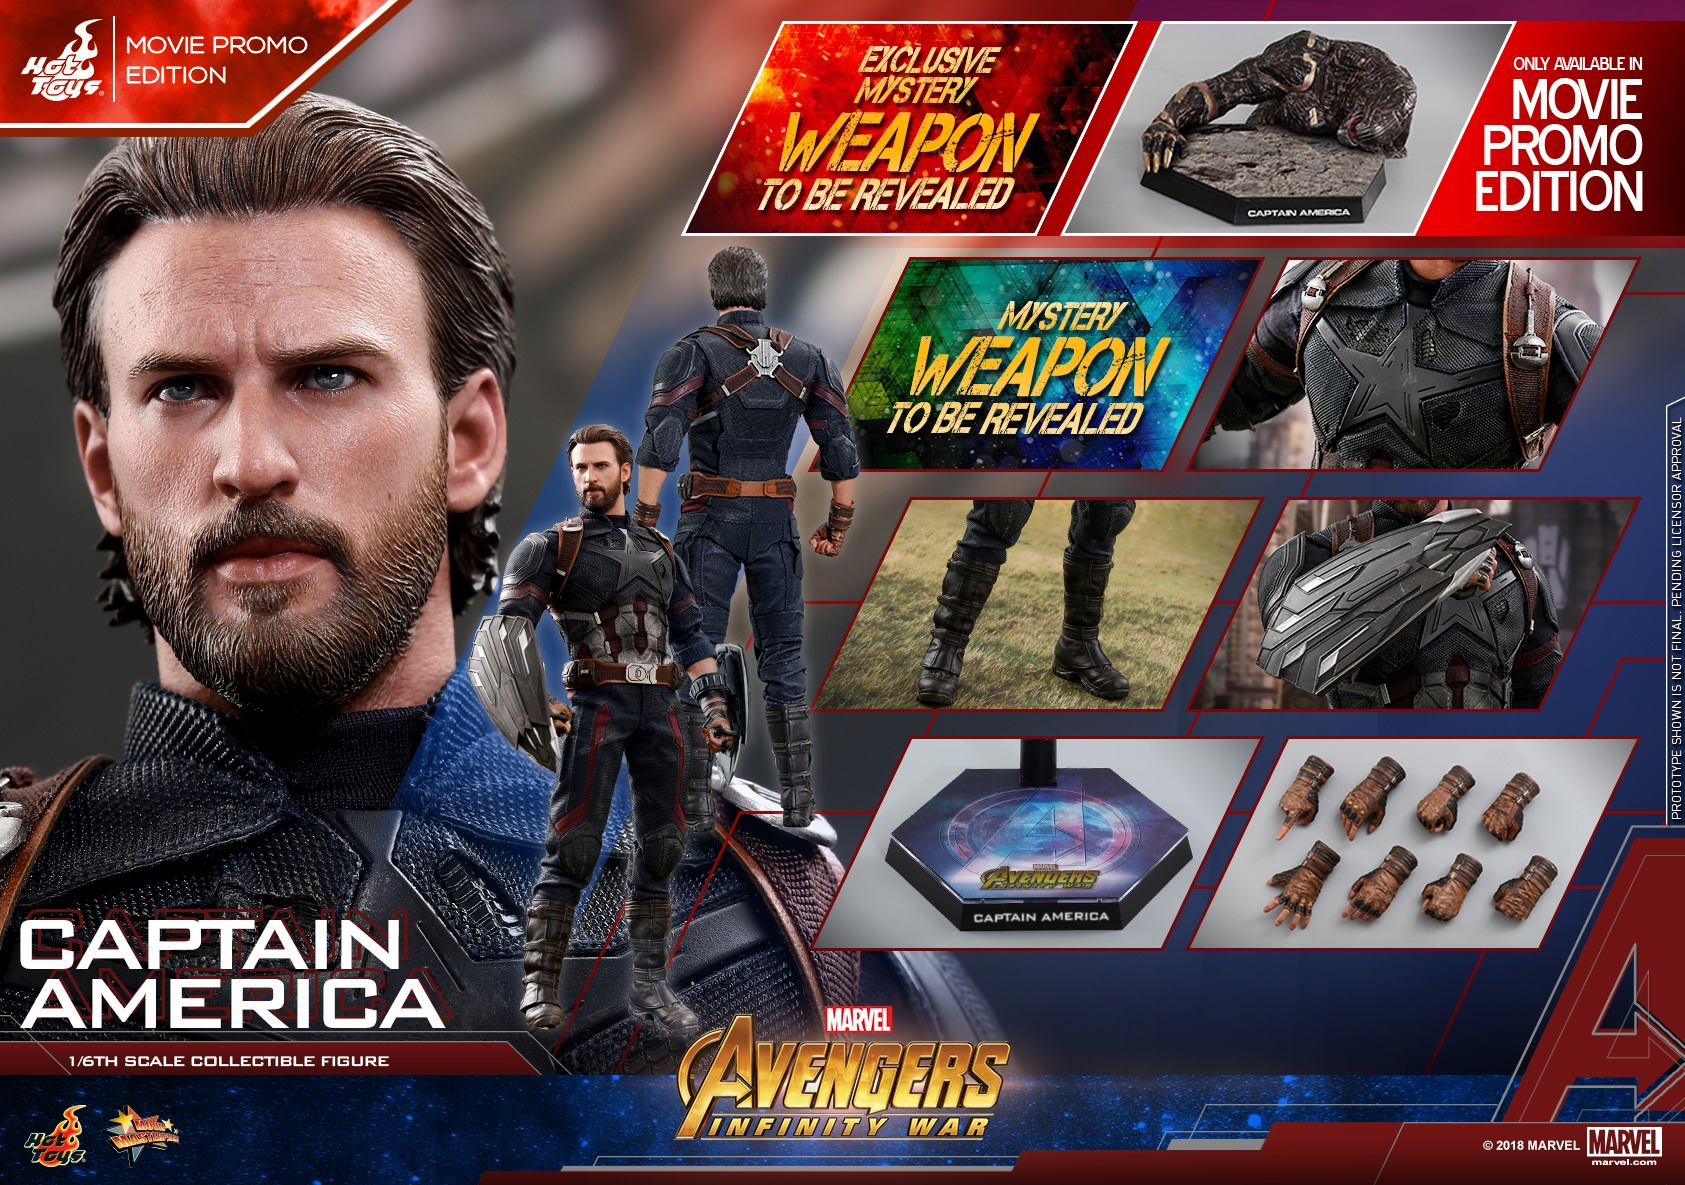 Hot Toys - AIW - Captain America collectible figure (Movie Promo)_PR16.jpg